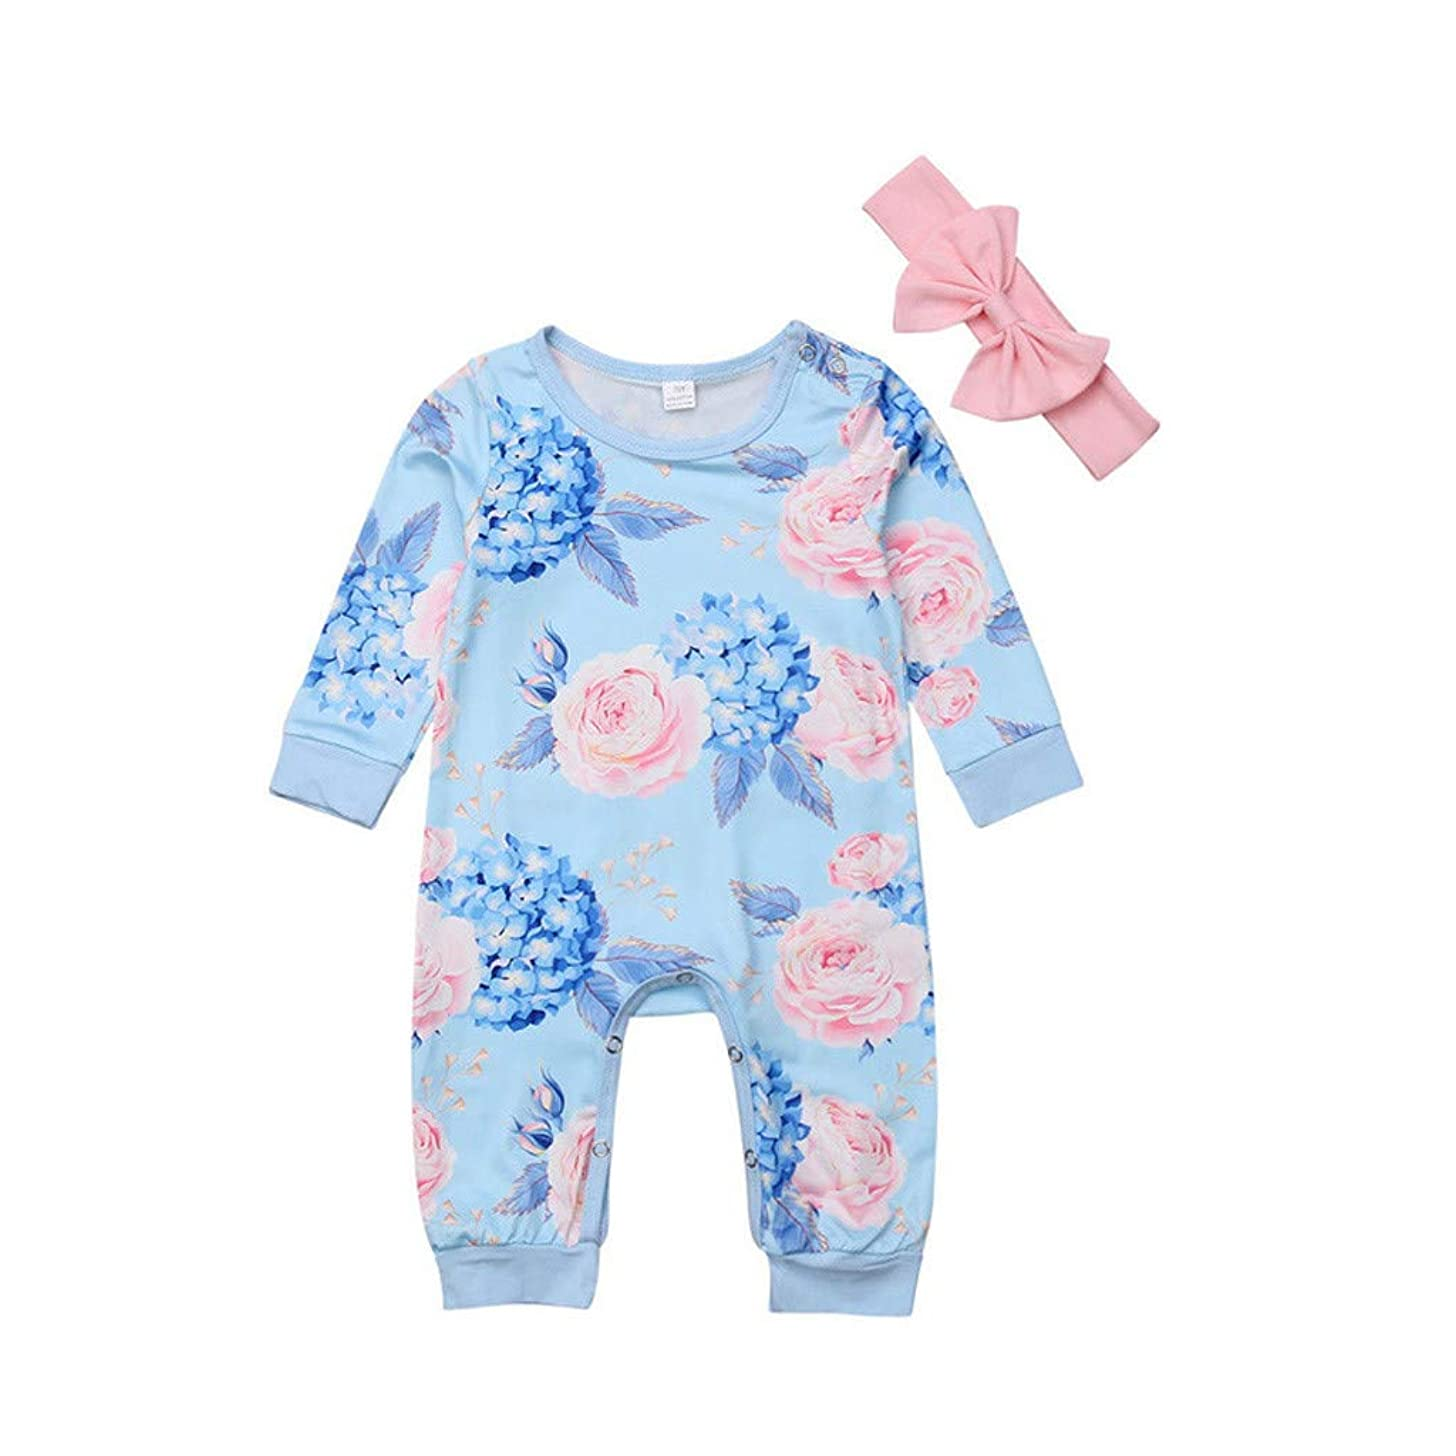 MOVEmen Baby Girl Cotton Floral Printing Romper Jumpsuit+Bow Hair Band Clothes Sets T-Shirt Leisure Sportswear